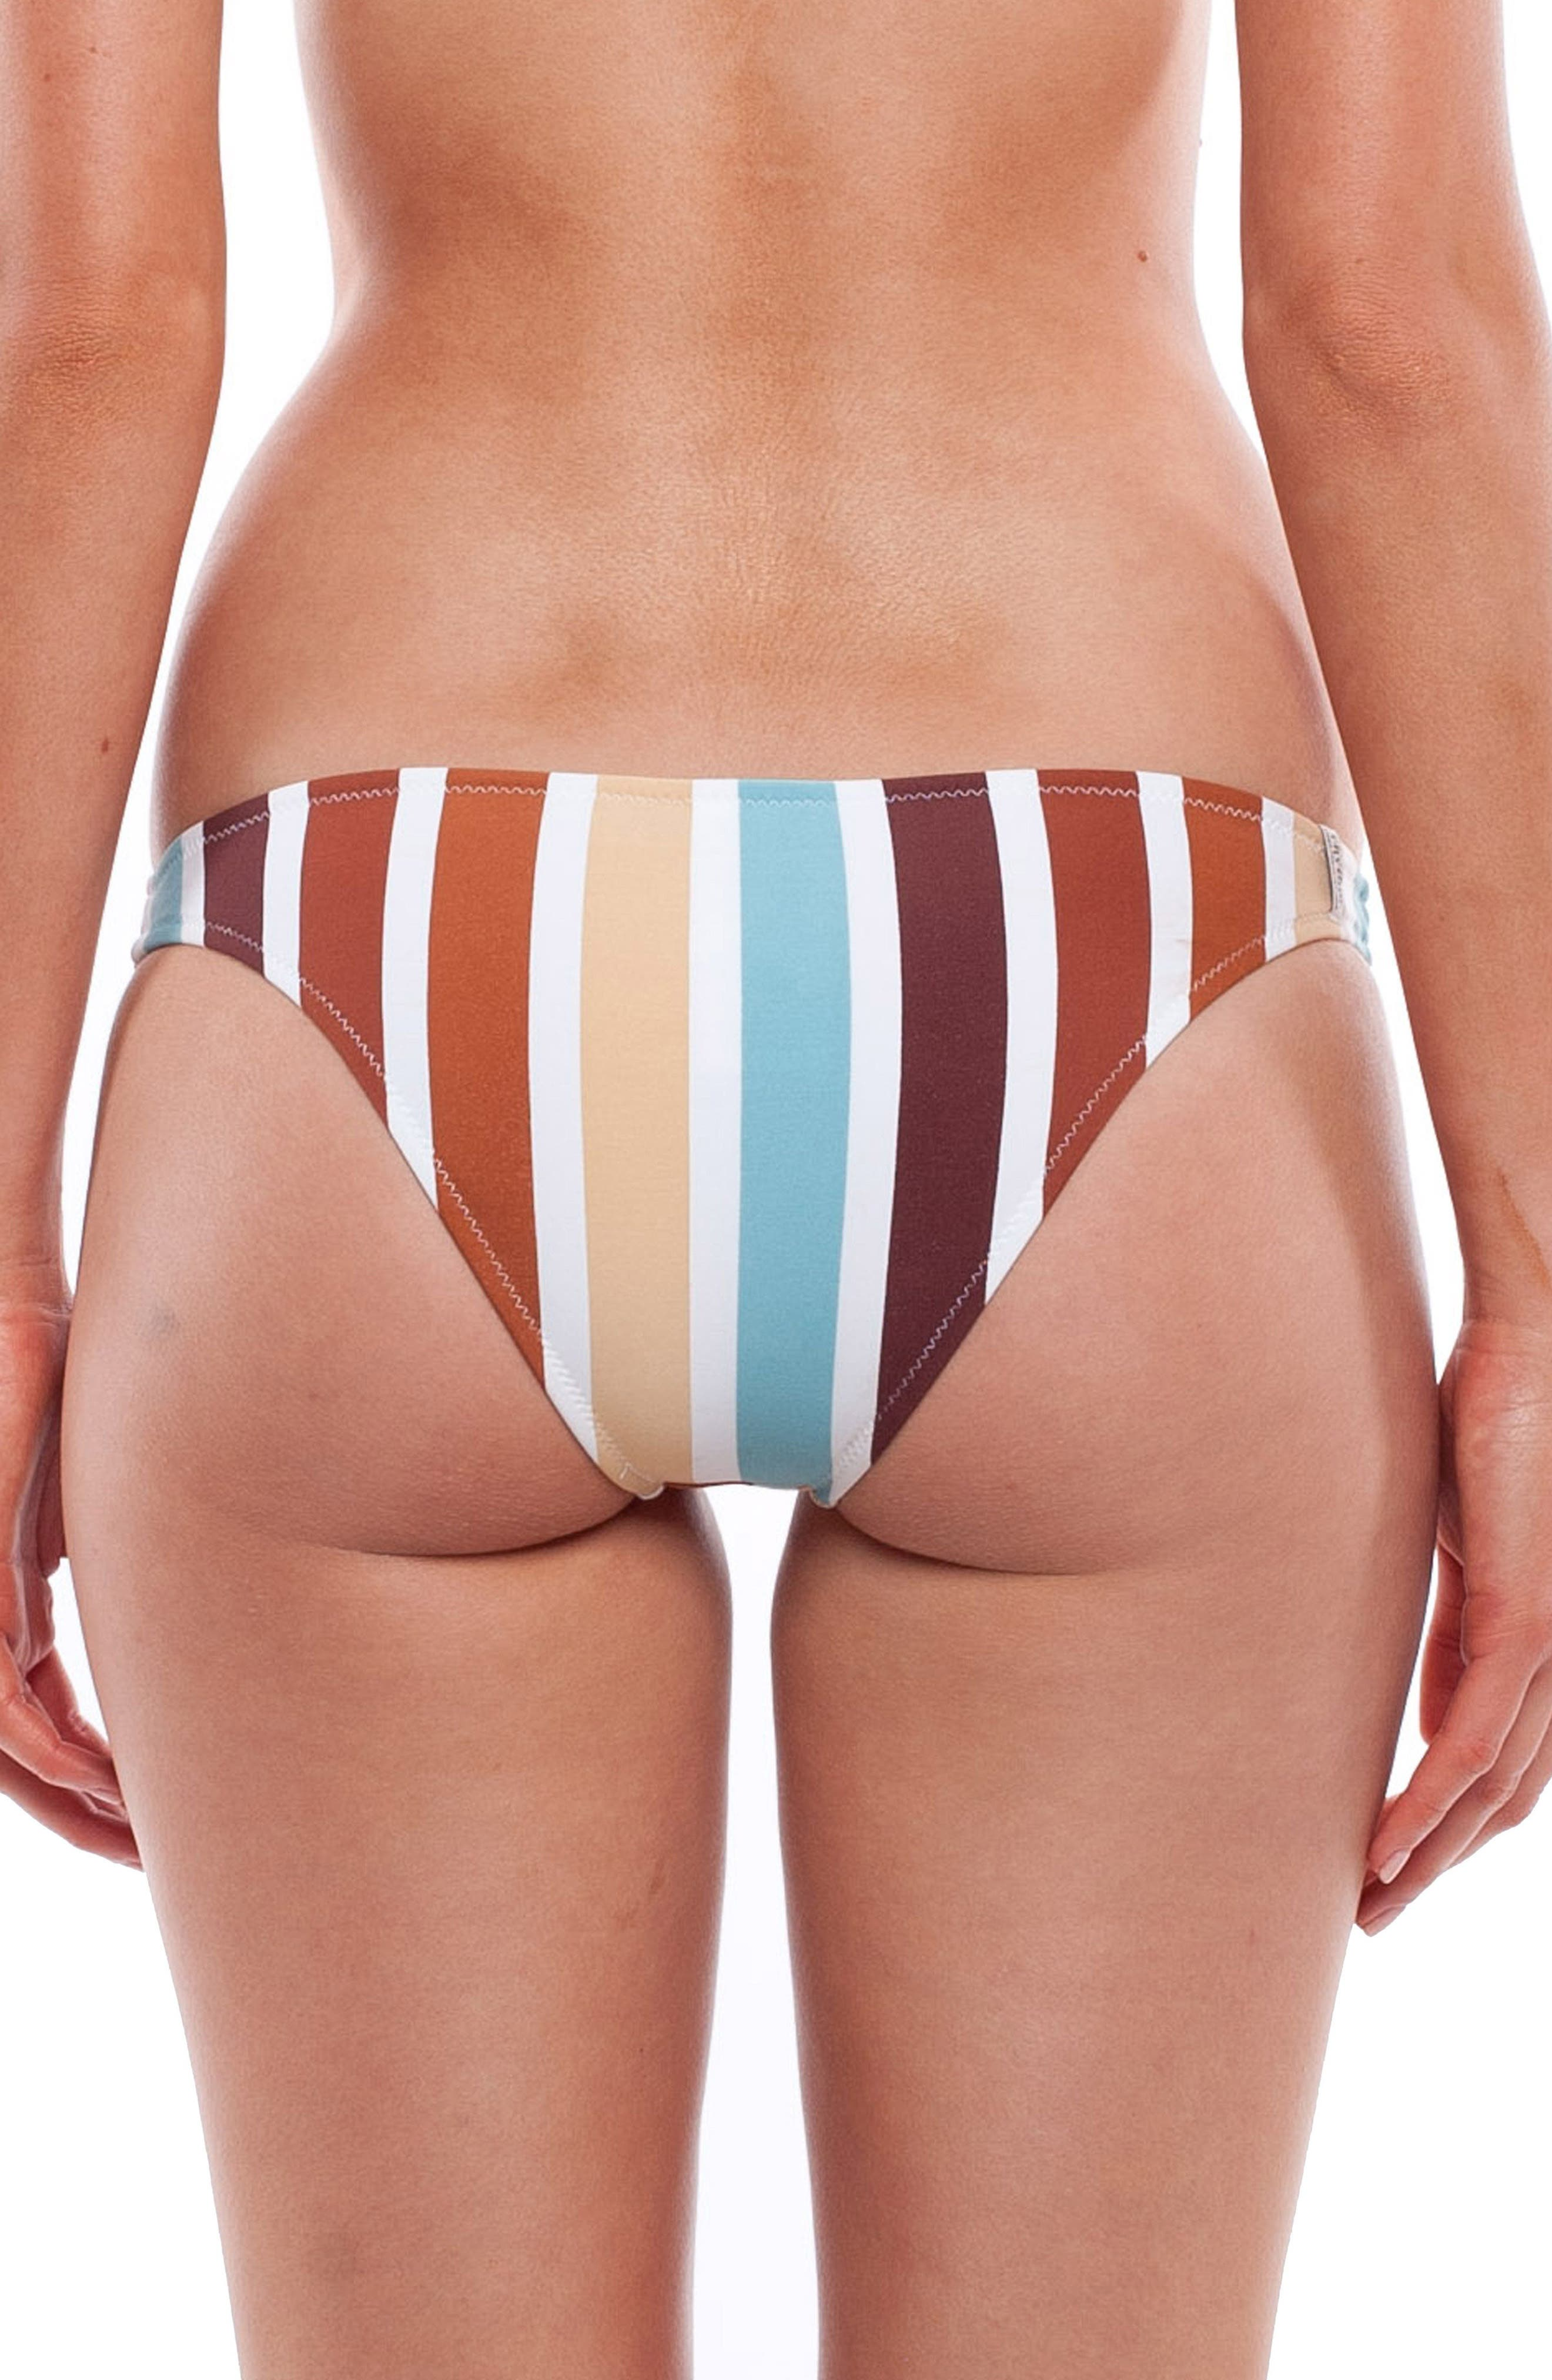 Zimbabwe Cheeky Bikini Bottoms,                             Alternate thumbnail 2, color,                             BLUE MULTI